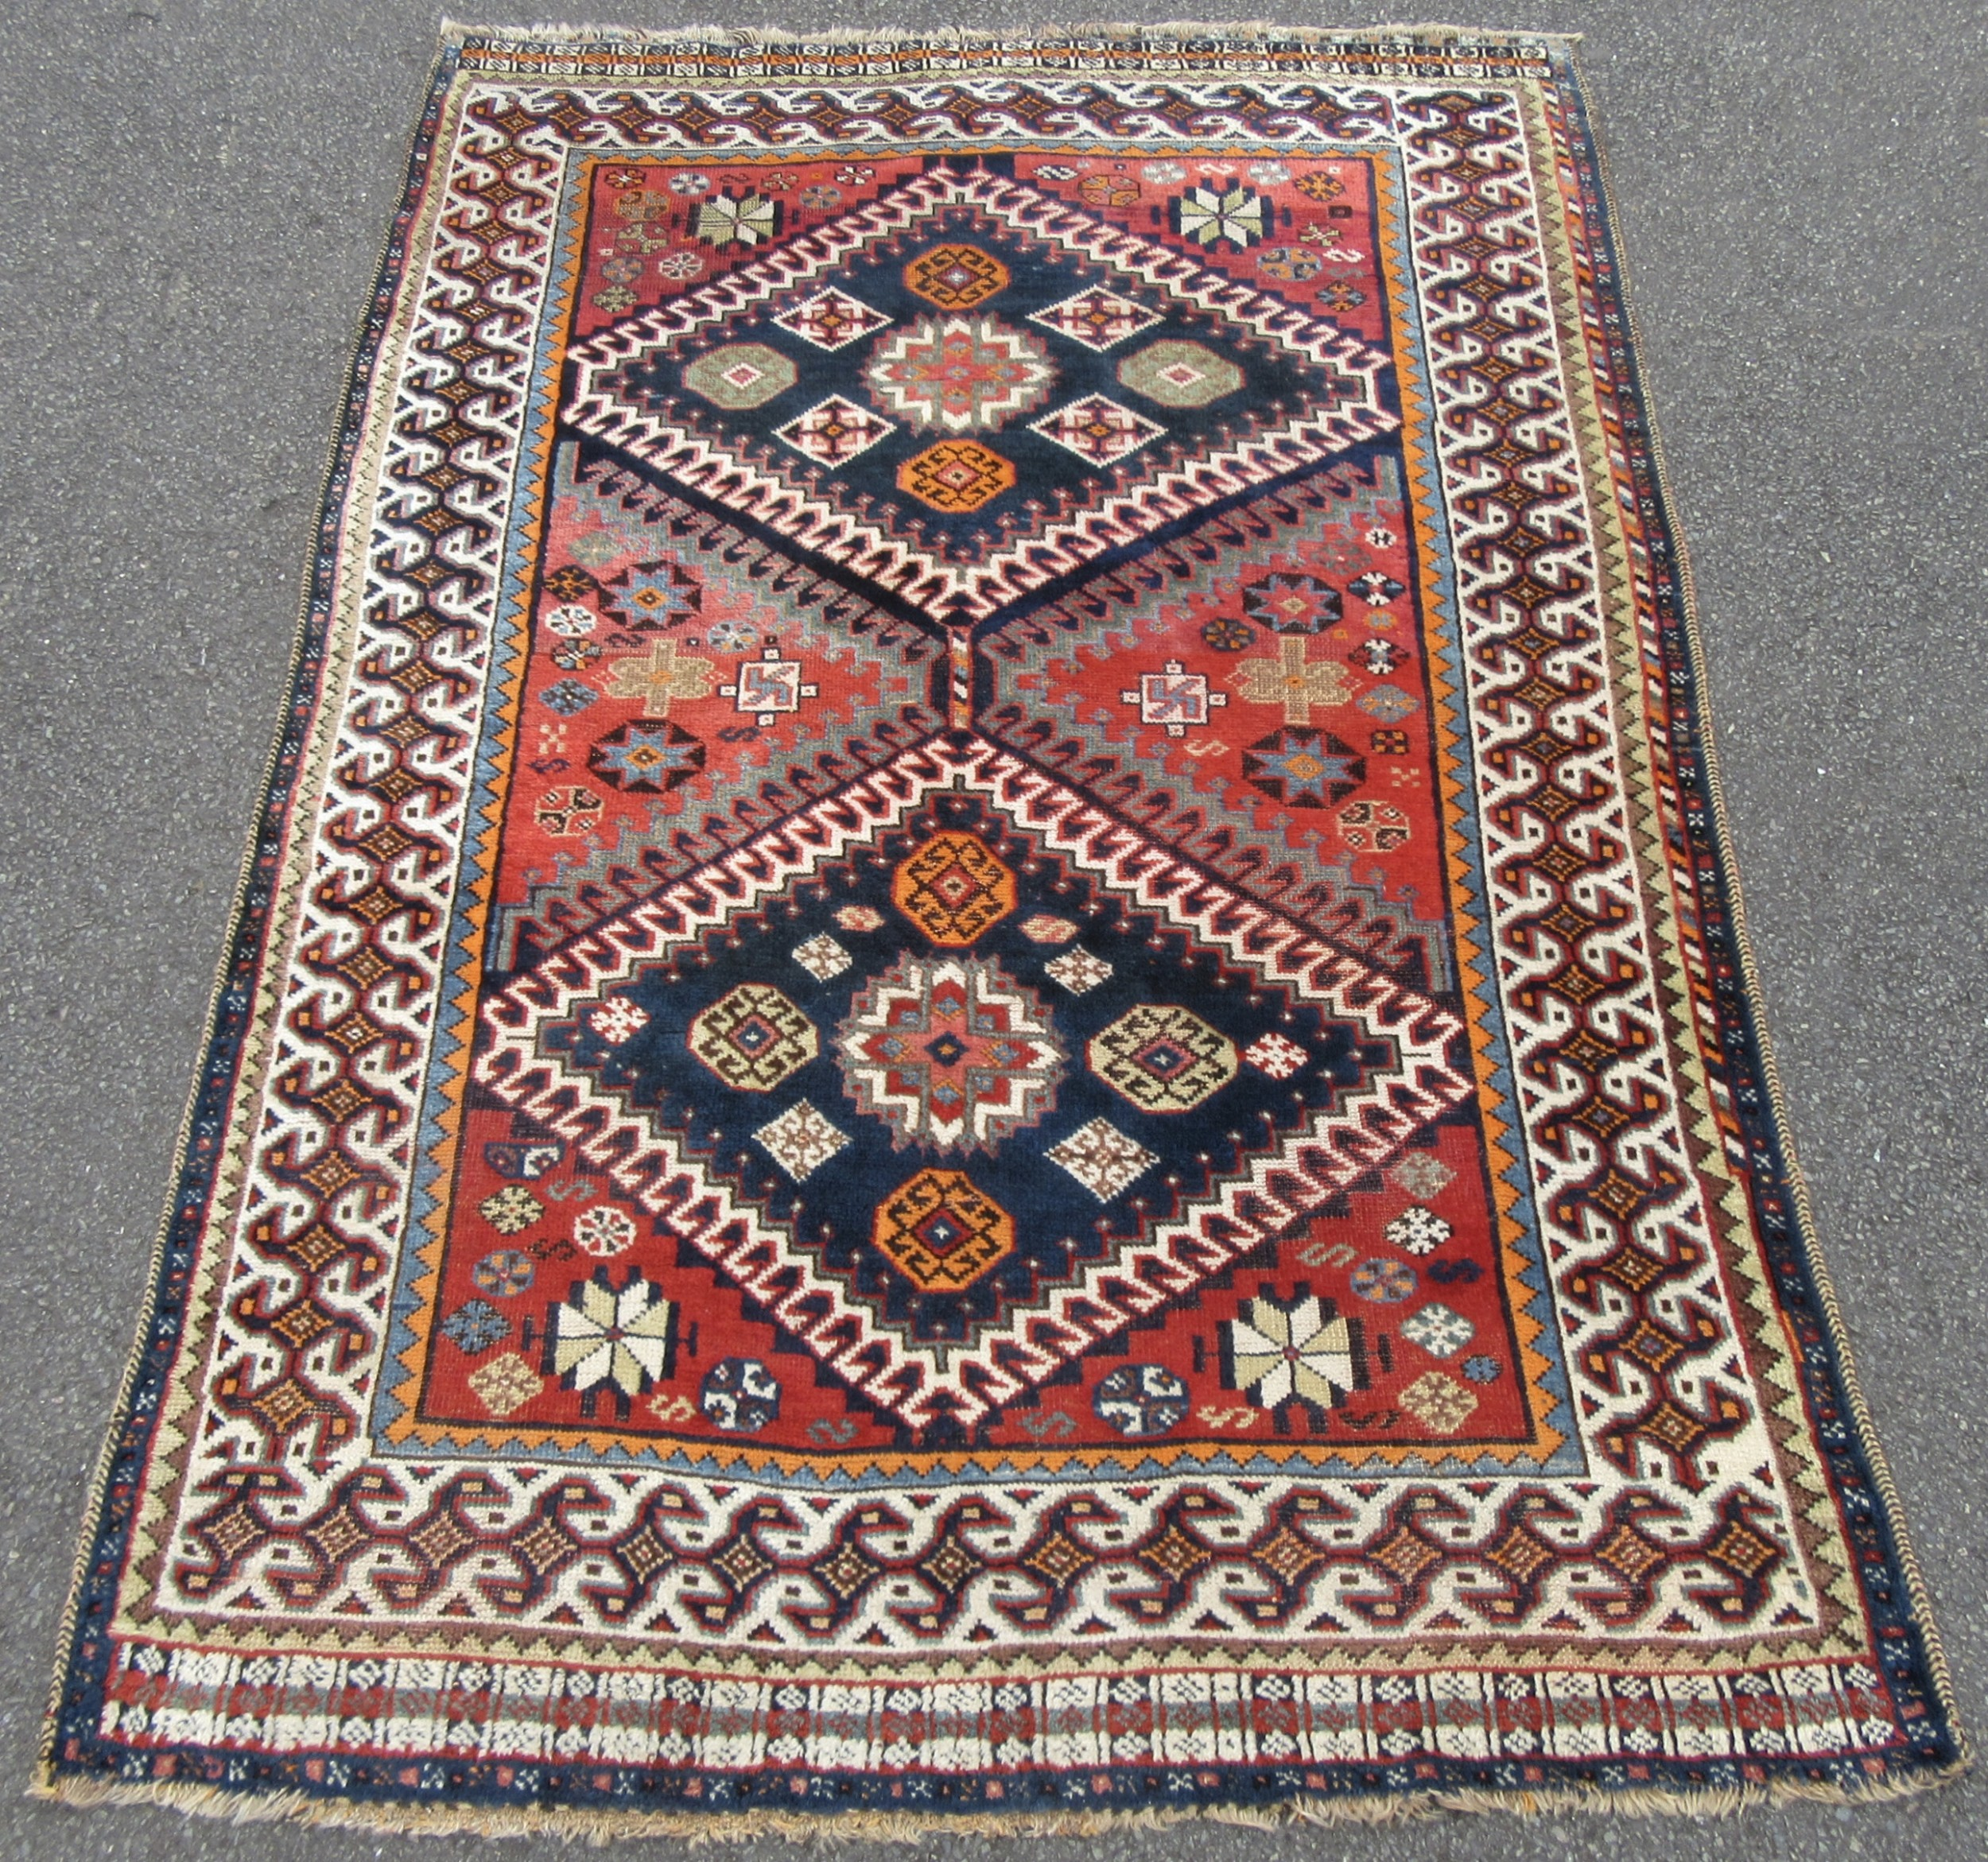 unusual distinctive antique south west persian fars shiraz qashqai region tribal rug